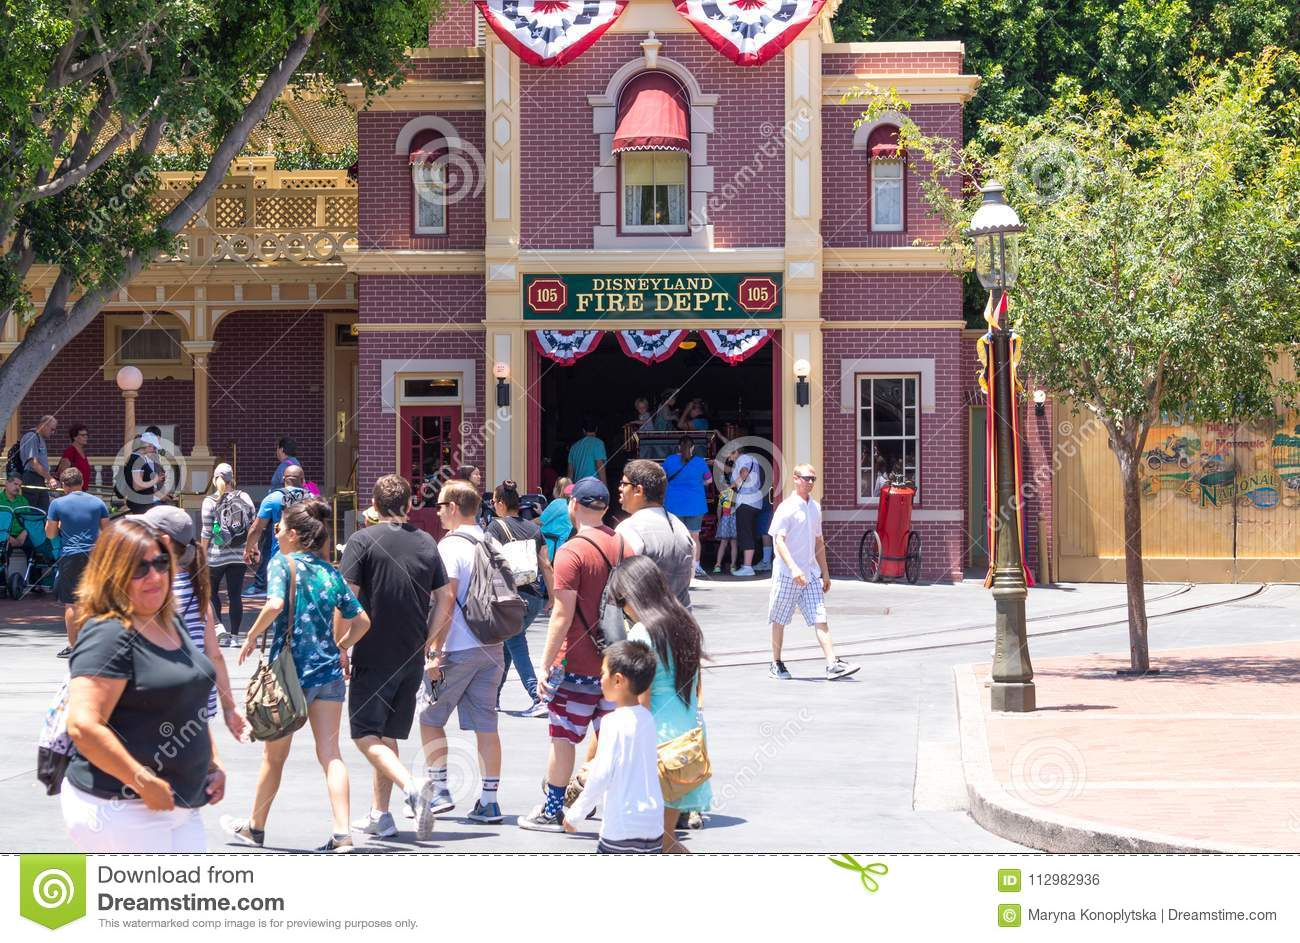 Colorful architecture of the Disneyland Park in Anaheim, Los Angeles, California, USA. People on an entertaining walk